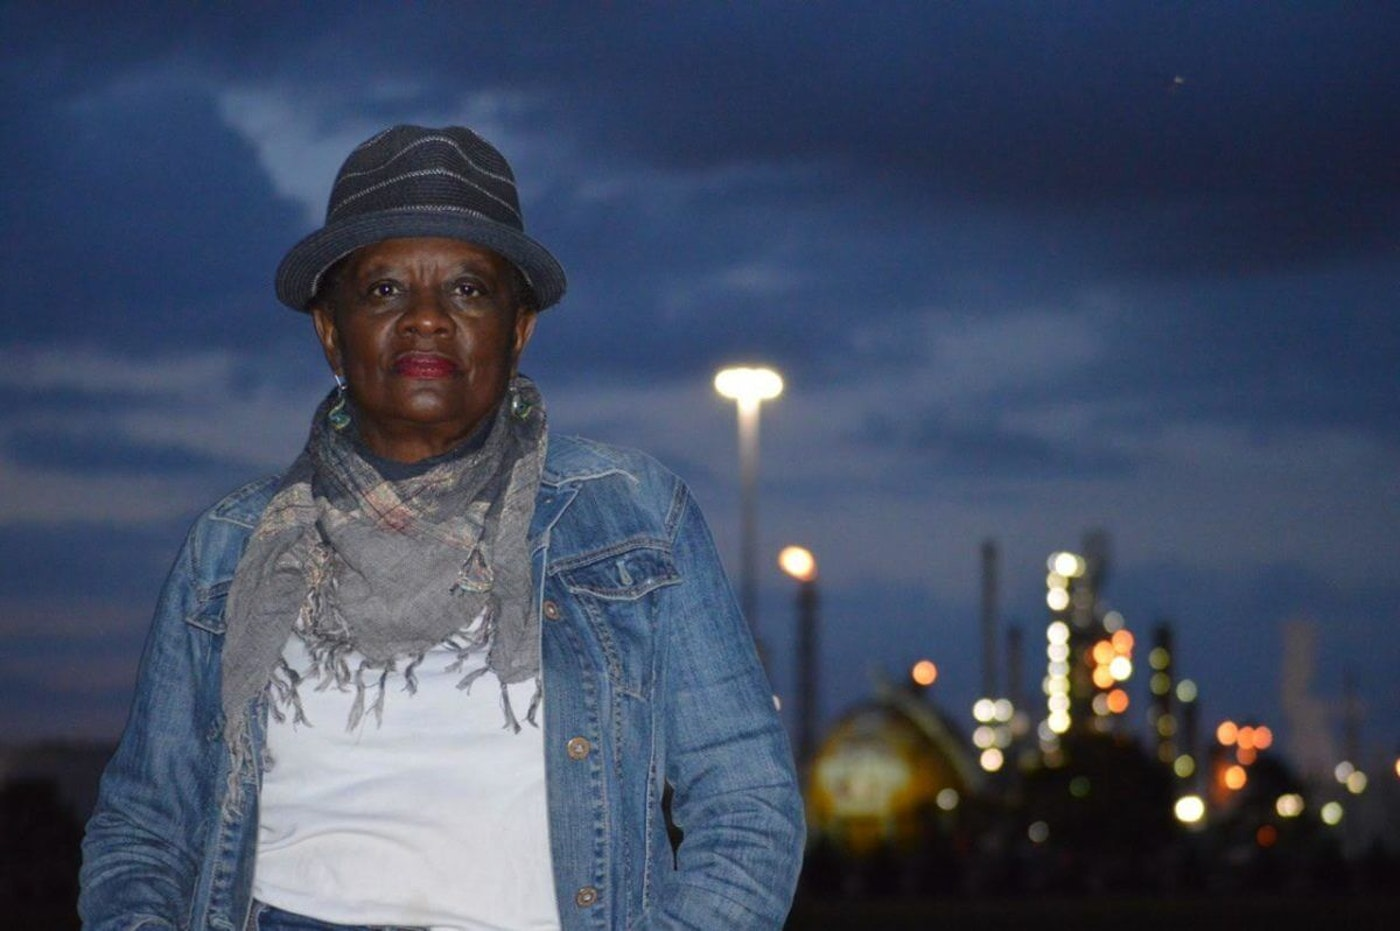 Detroit resident Emma Lockridge lives near 28 facilities that produce pollutants she, and others, have to breathe in.